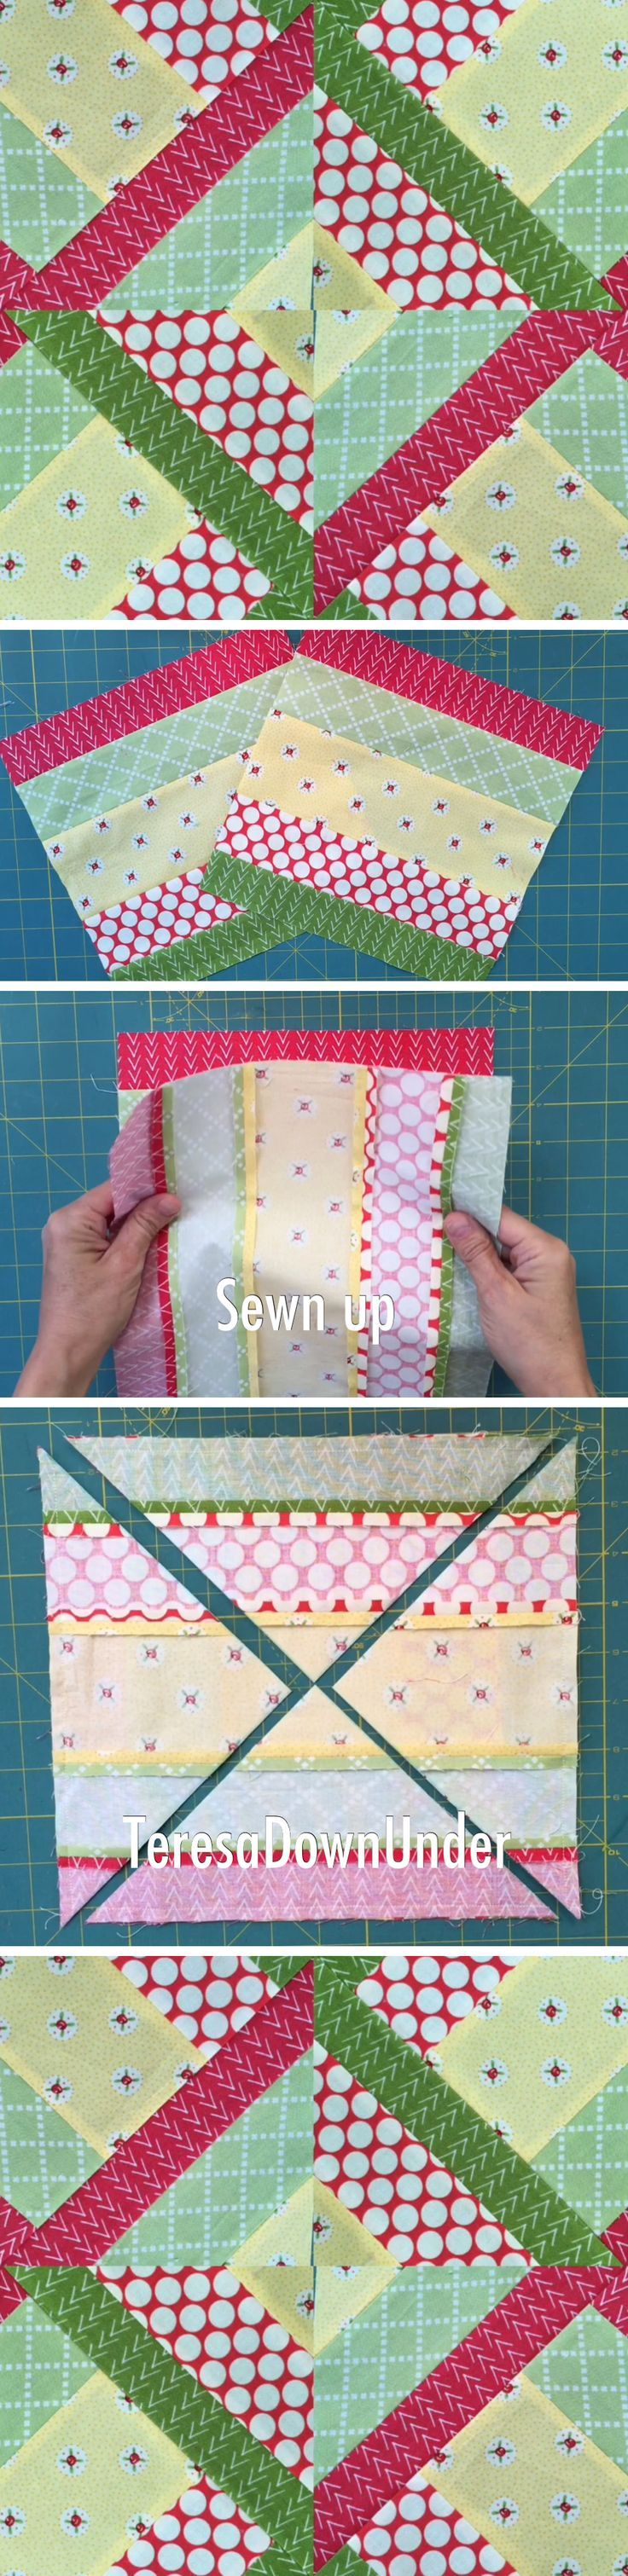 From 5 fabric strips to quilt block video tutorial